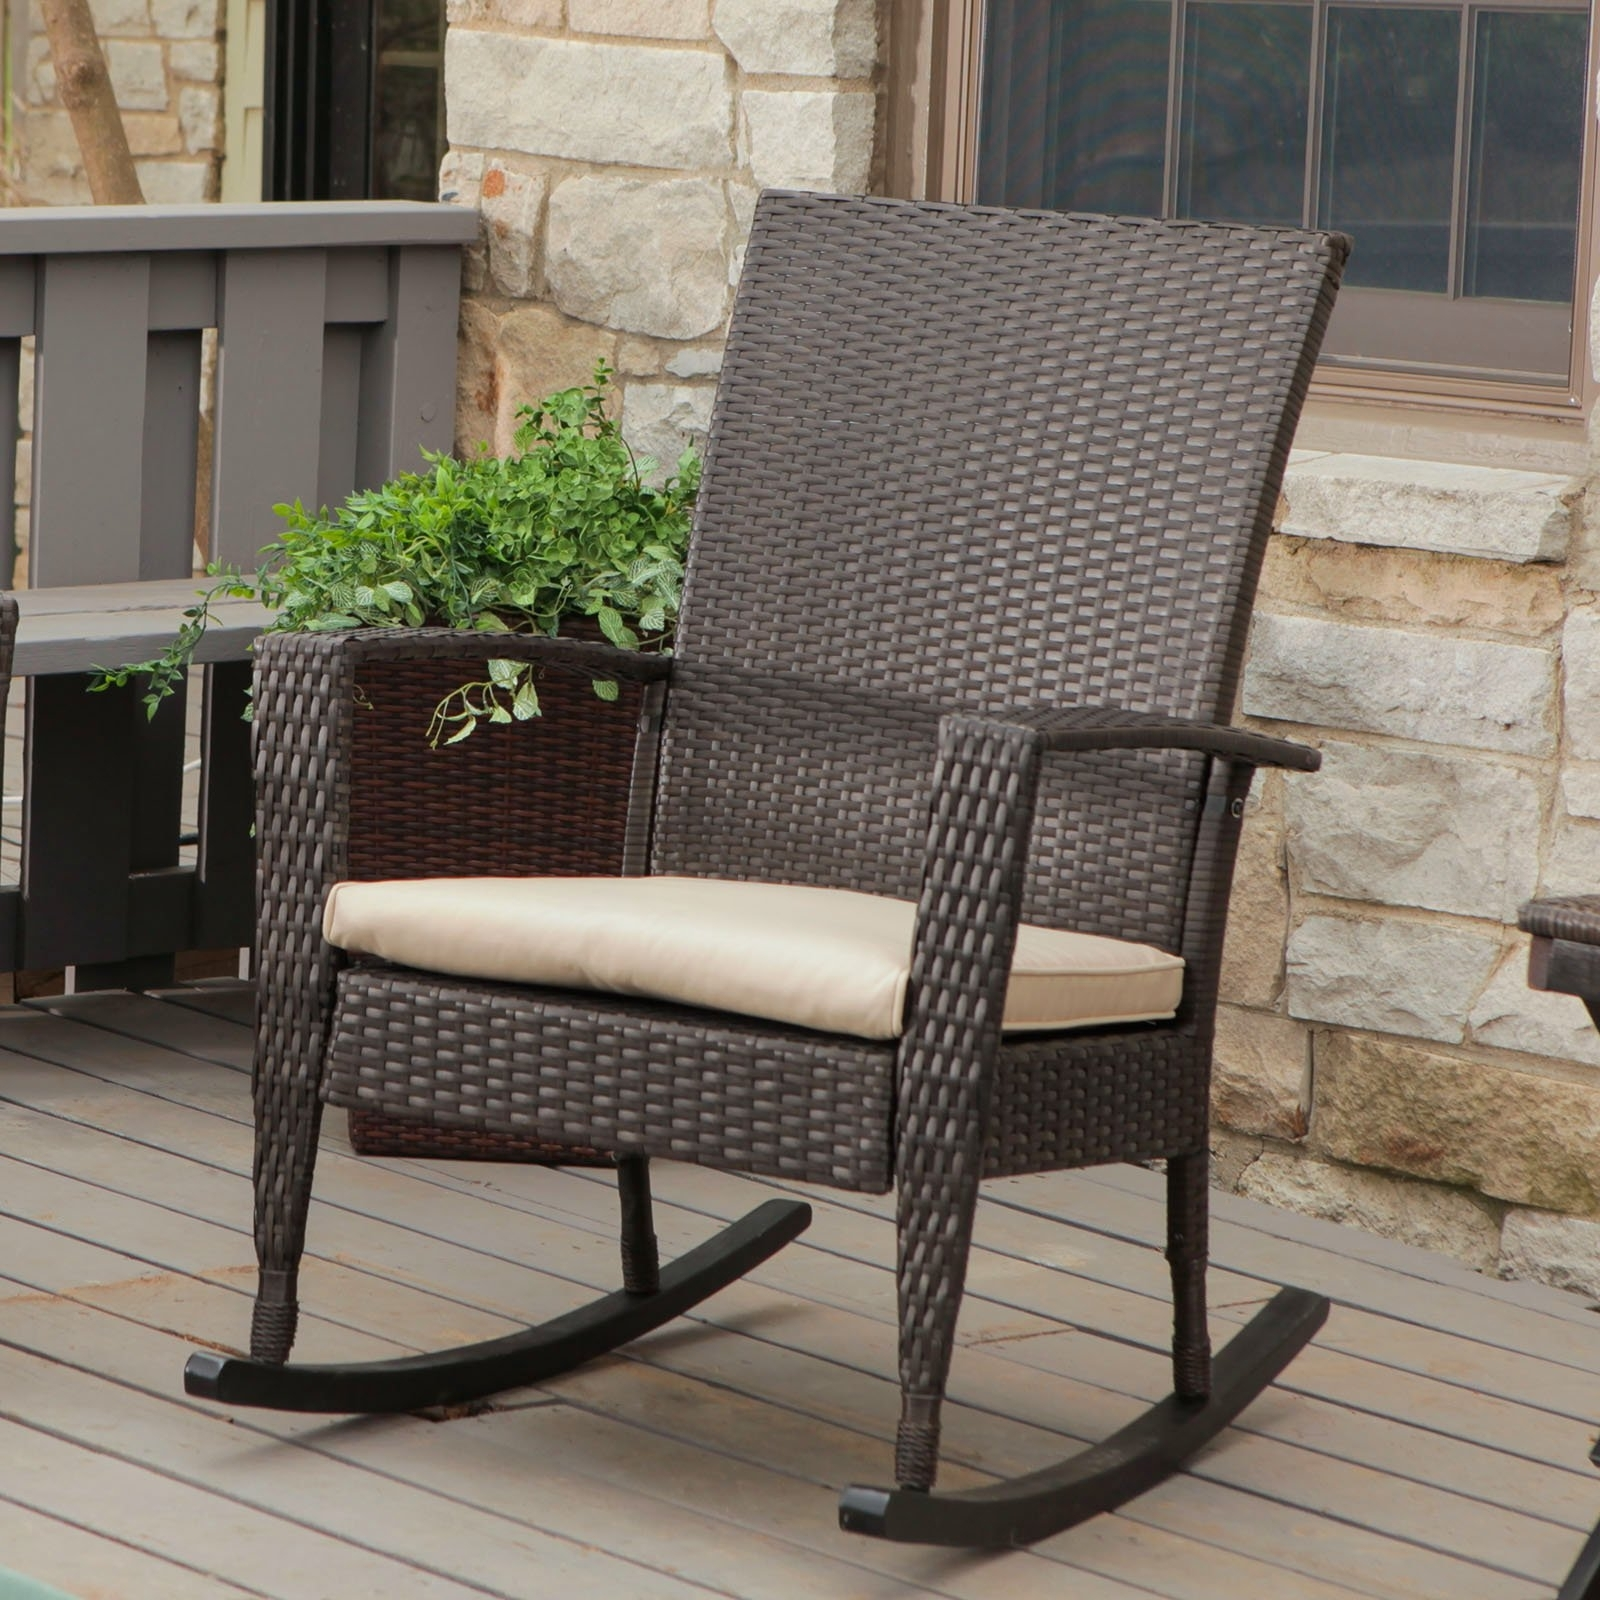 Most Up To Date Coral Coast Soho High Back Wicker Rocking Chair With Free Cushion Within Outdoor Wicker Rocking Chairs With Cushions (View 7 of 20)